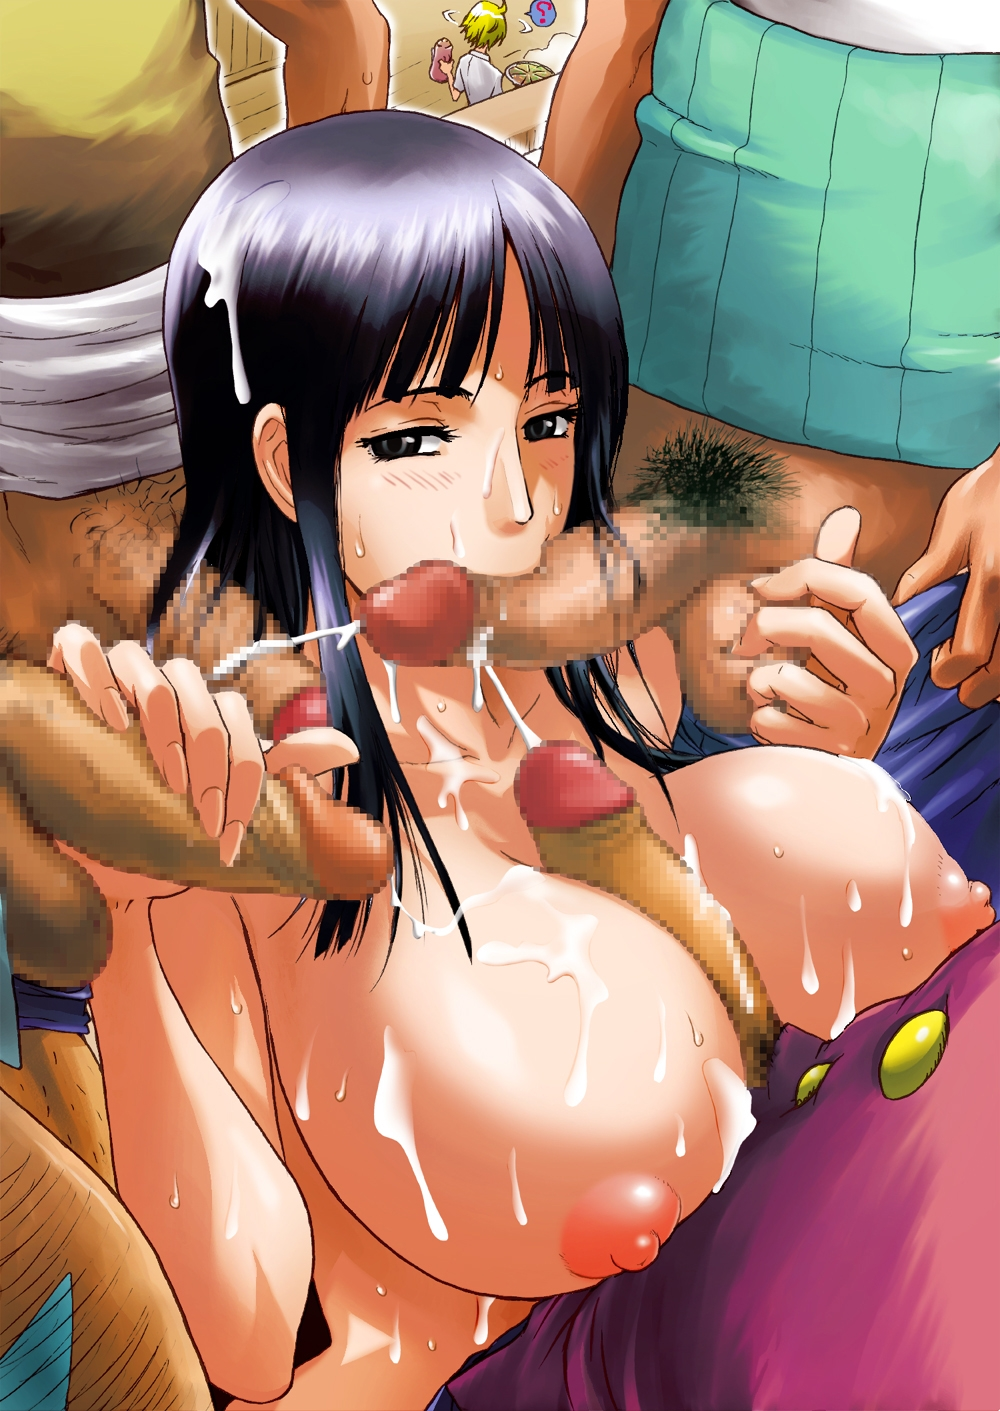 Toon sex pic ##00013046582 ball caress ballcaress big breasts black hair breasts bukkake caressing testicles censored cum double handjob ejaculation fellatio foreskin franky gangbang group sex handjob highres huge breasts konkitto monkey d luffy multiple penises nico robin nipples one piece oral orgy paizuri penis roronoa zoro sanji sex usopp